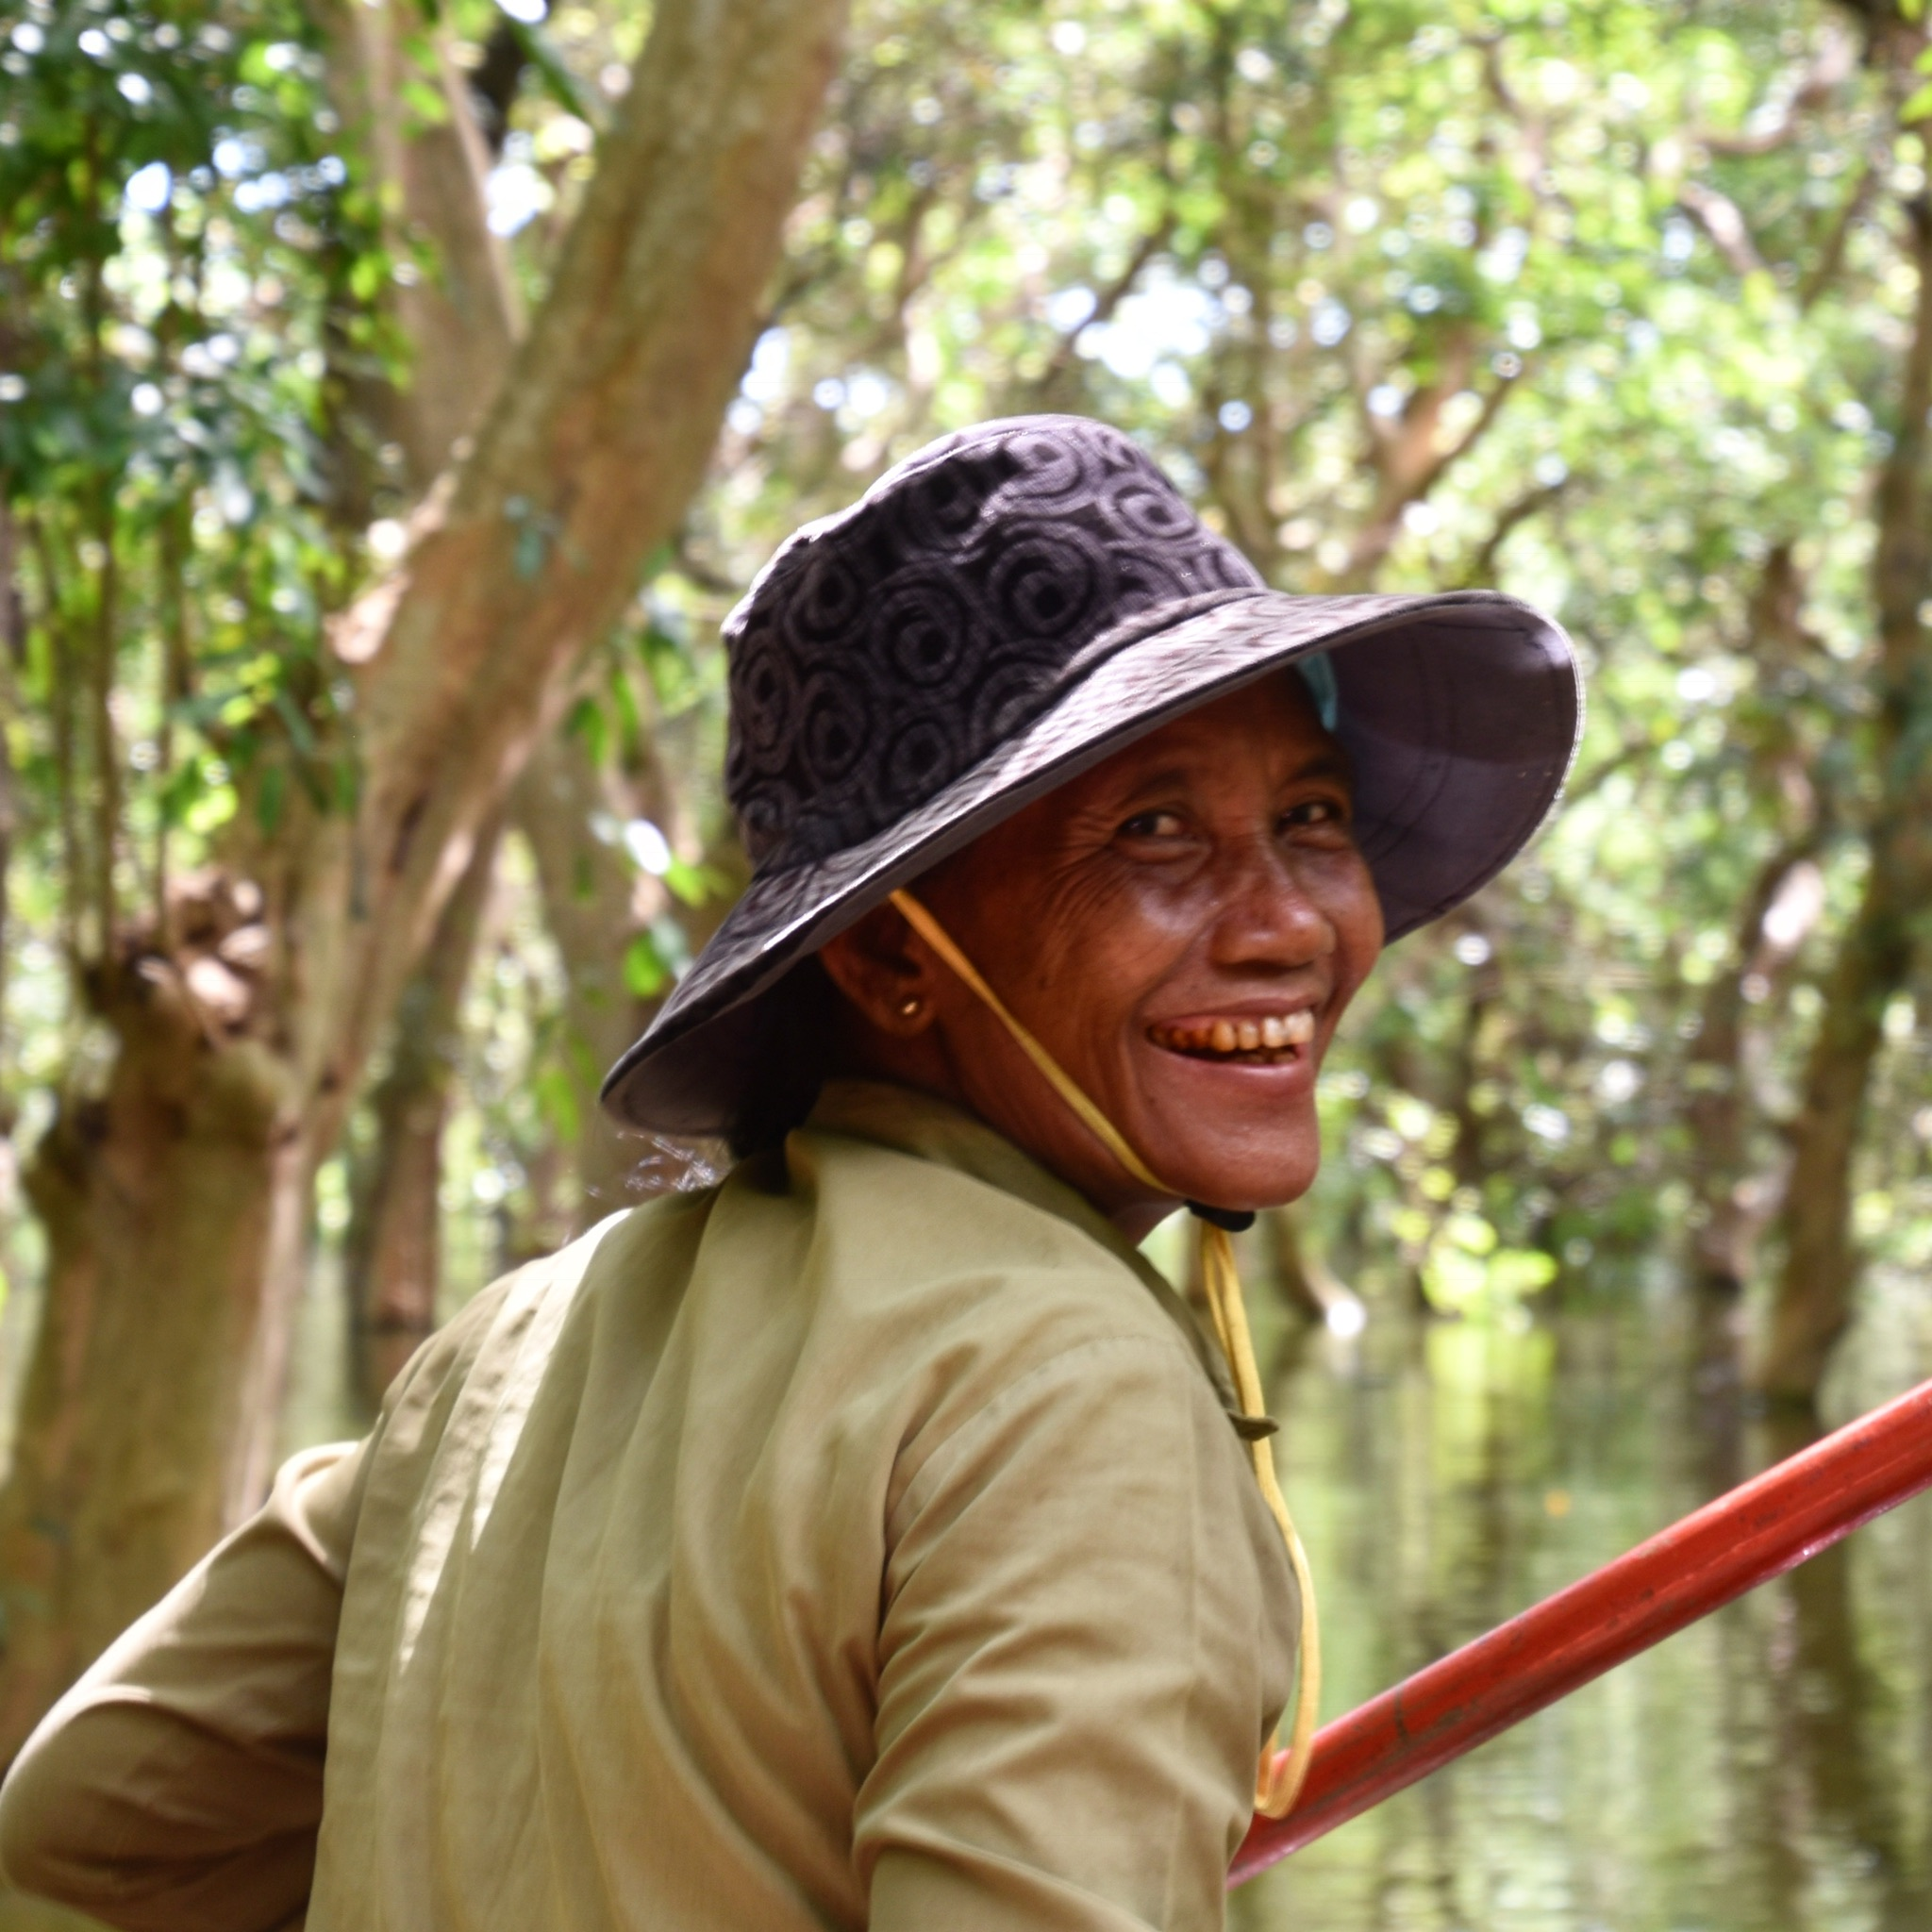 our canoe captain thru the floating forest